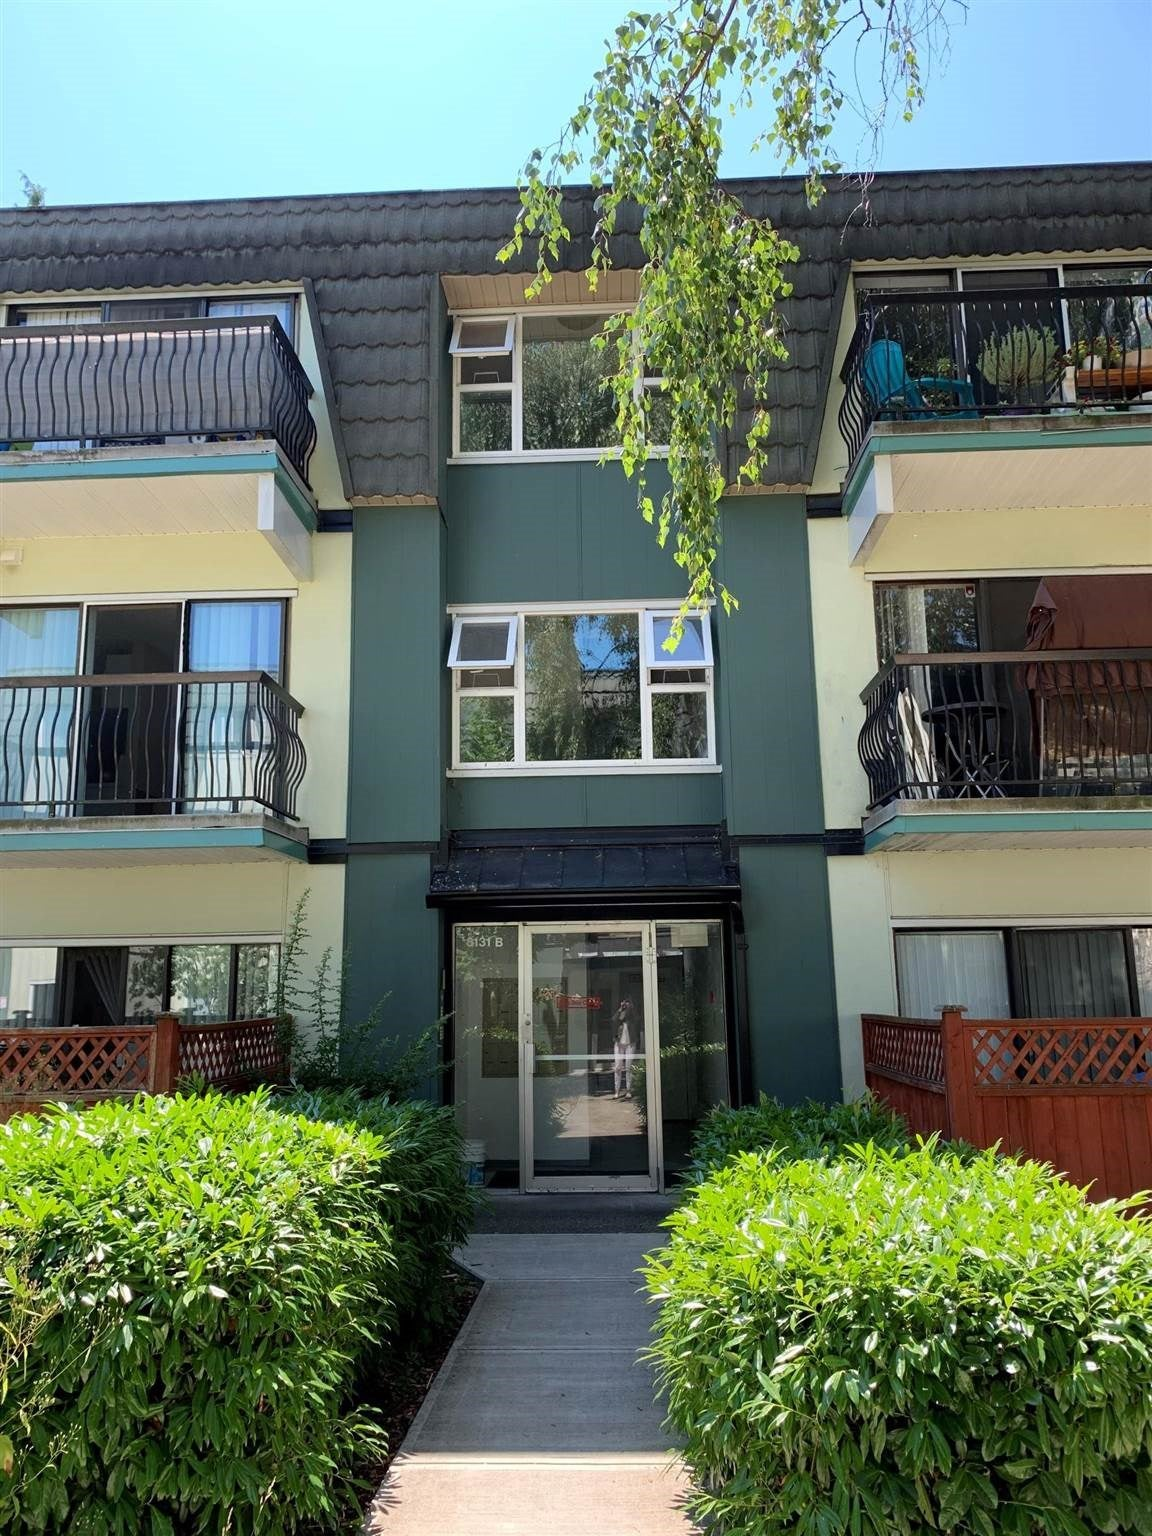 155 8151 RYAN ROAD - South Arm Apartment/Condo for sale, 2 Bedrooms (R2601416)